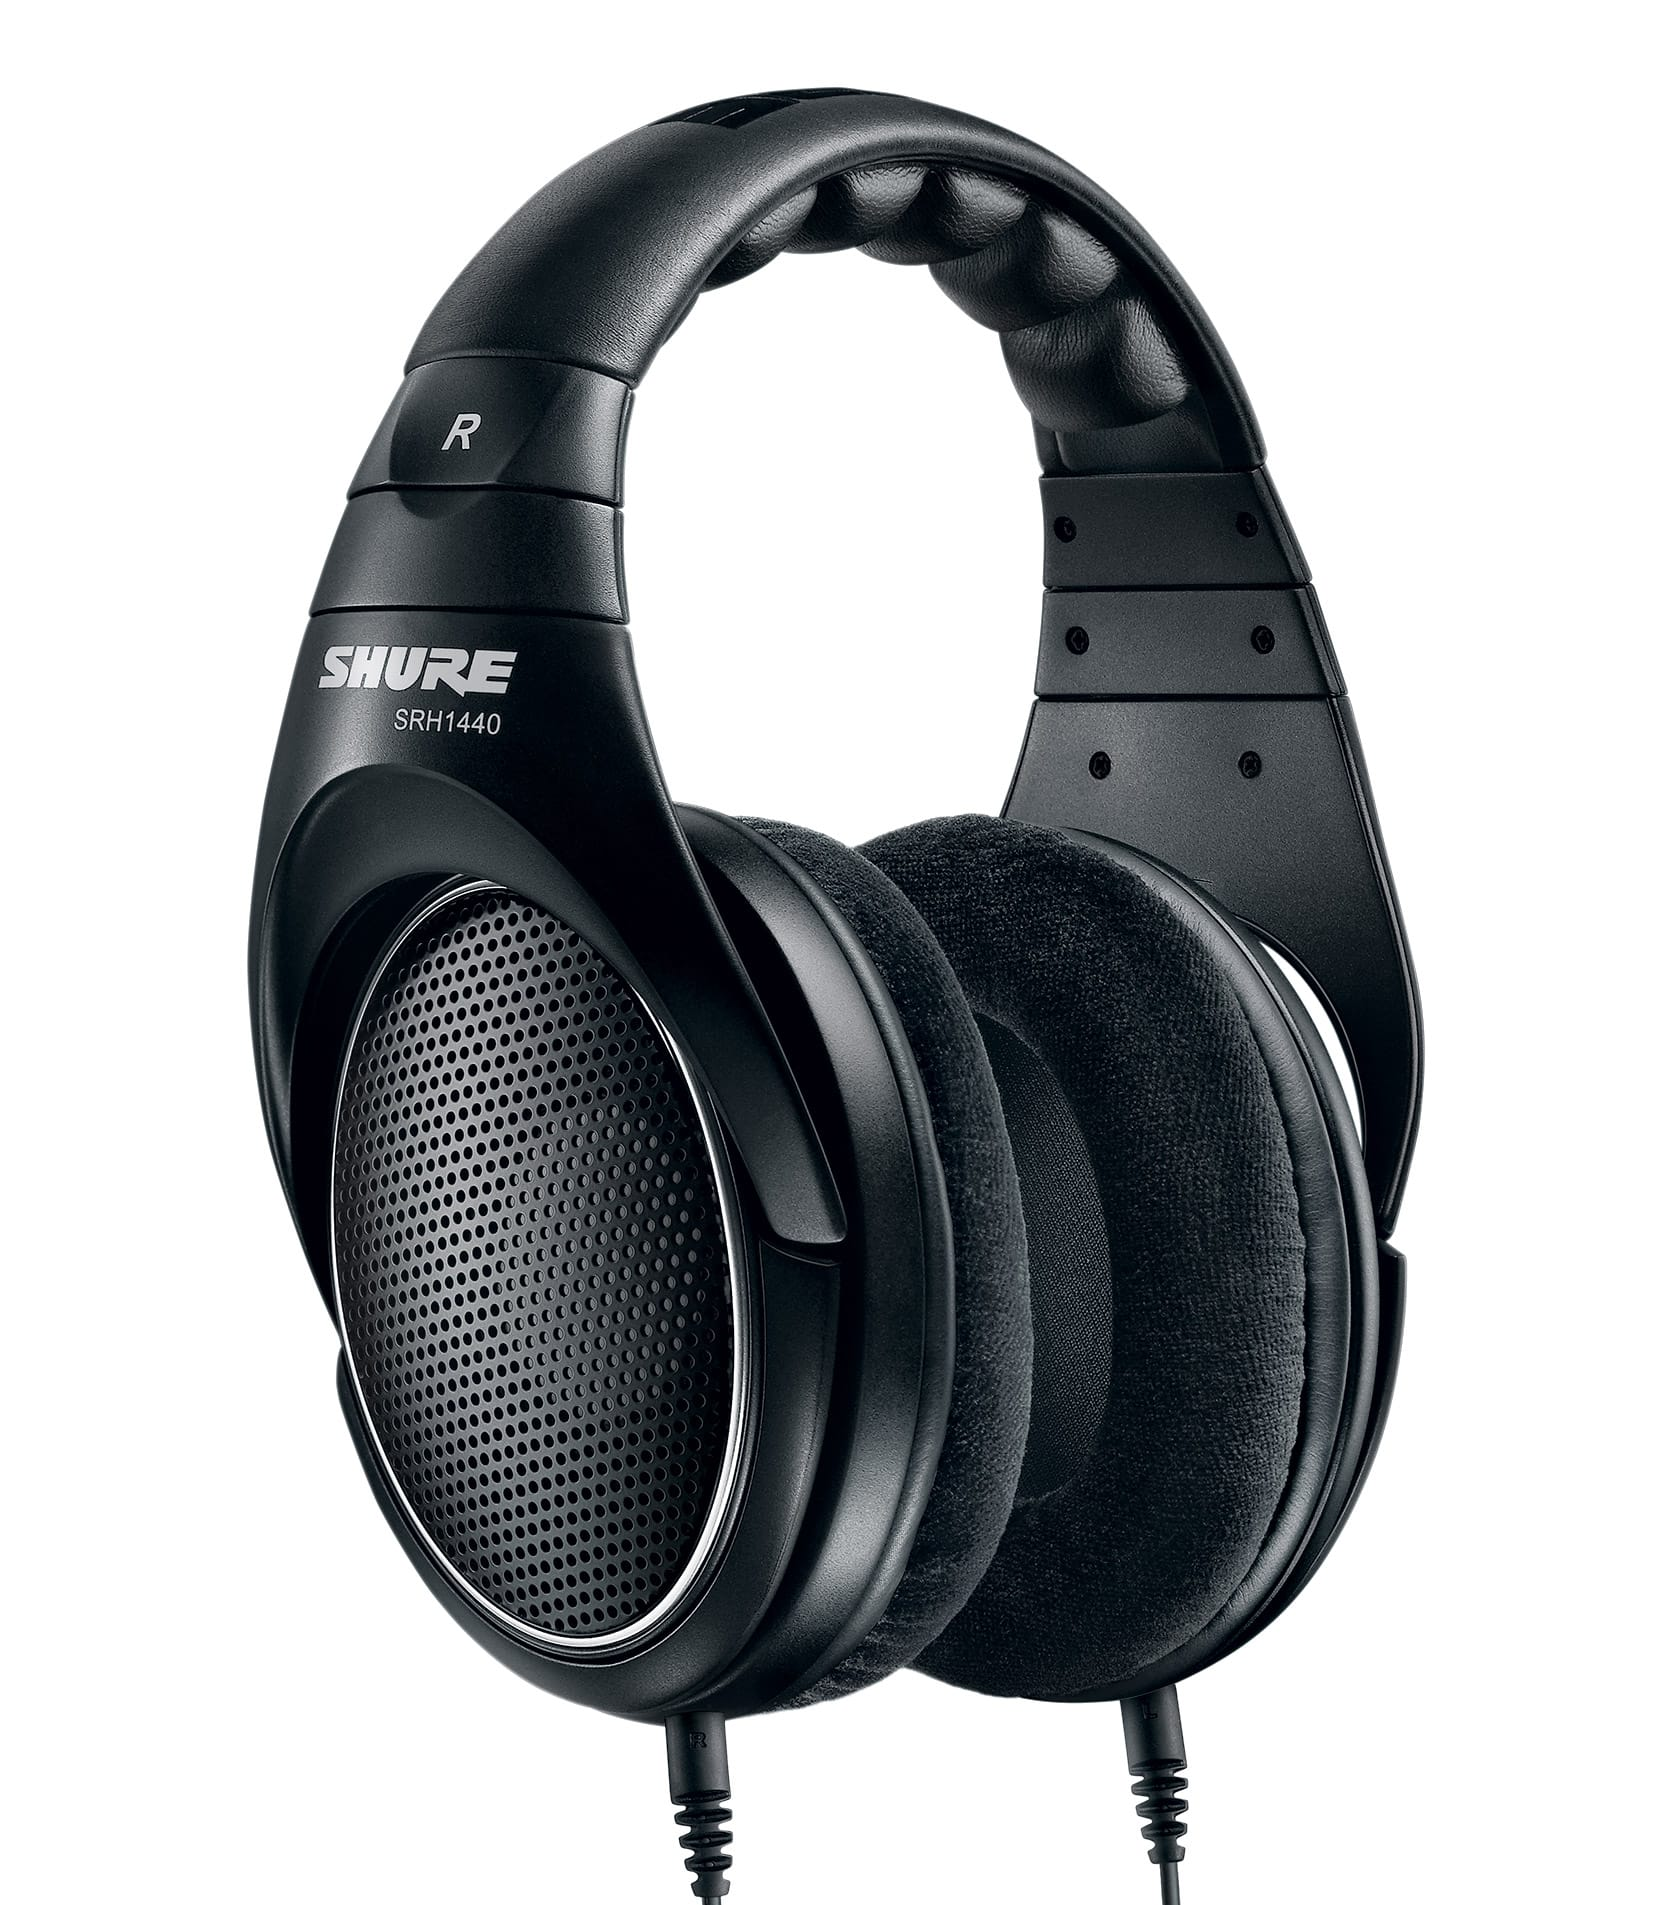 SRH1440 Professional Studio Headphones - Buy Online